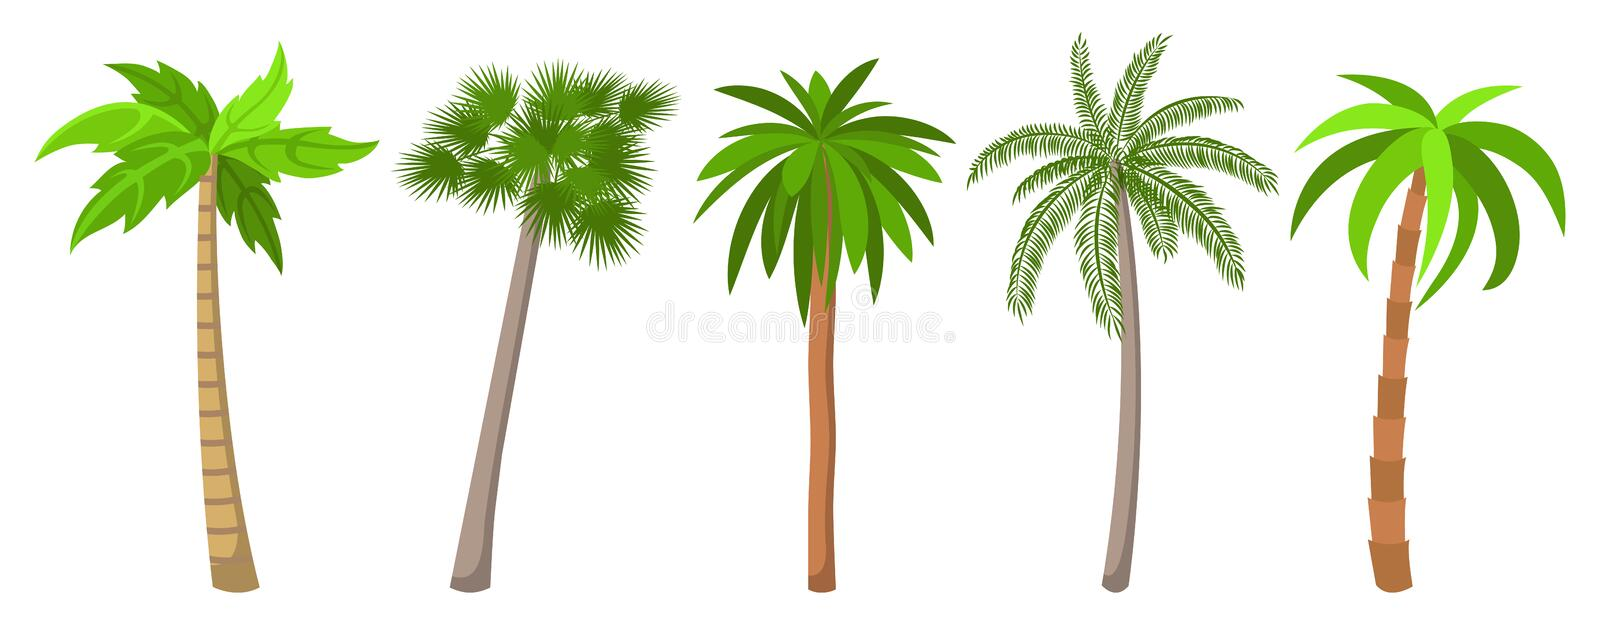 Different types of palm trees set. vector illustration